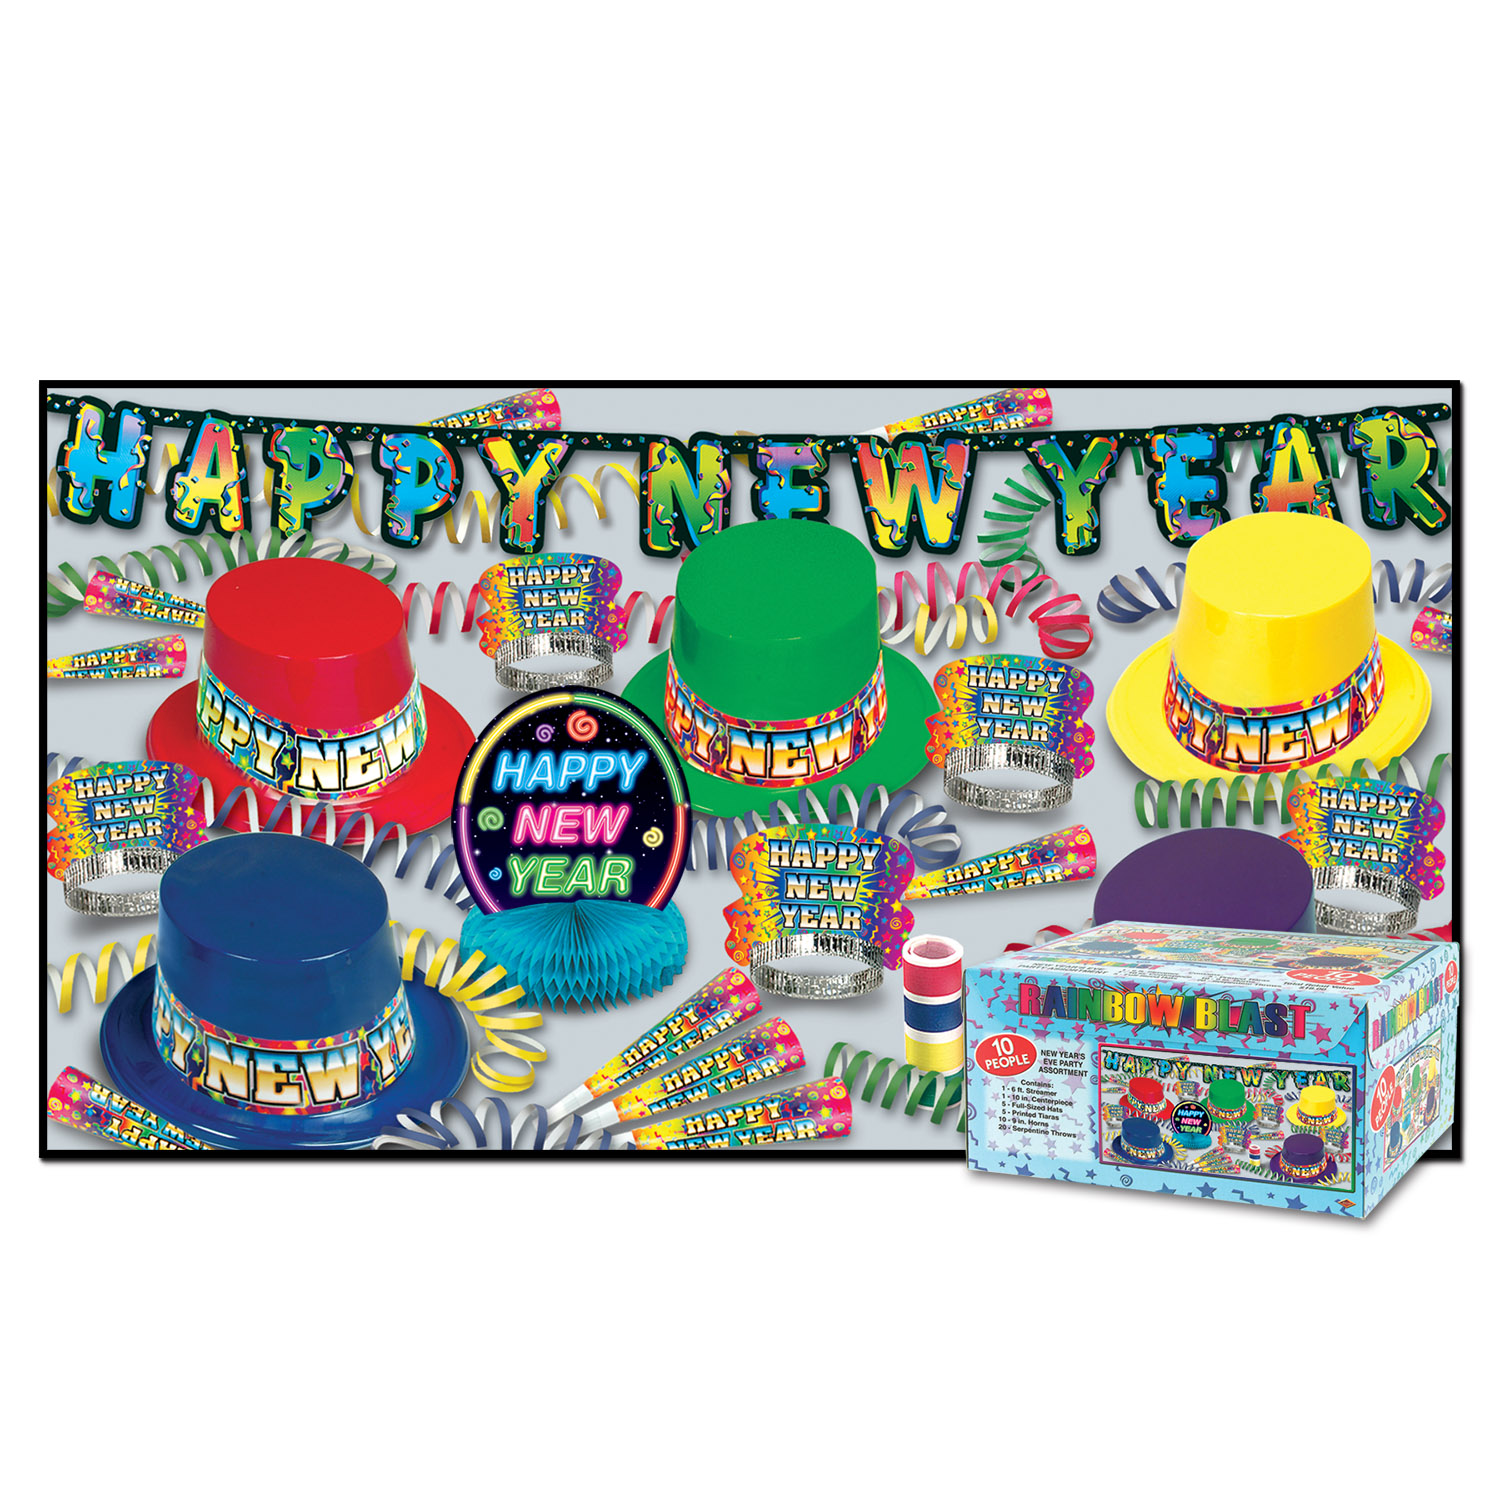 Rainbow Blast New Year's Eve Party Kit for 10 People ...